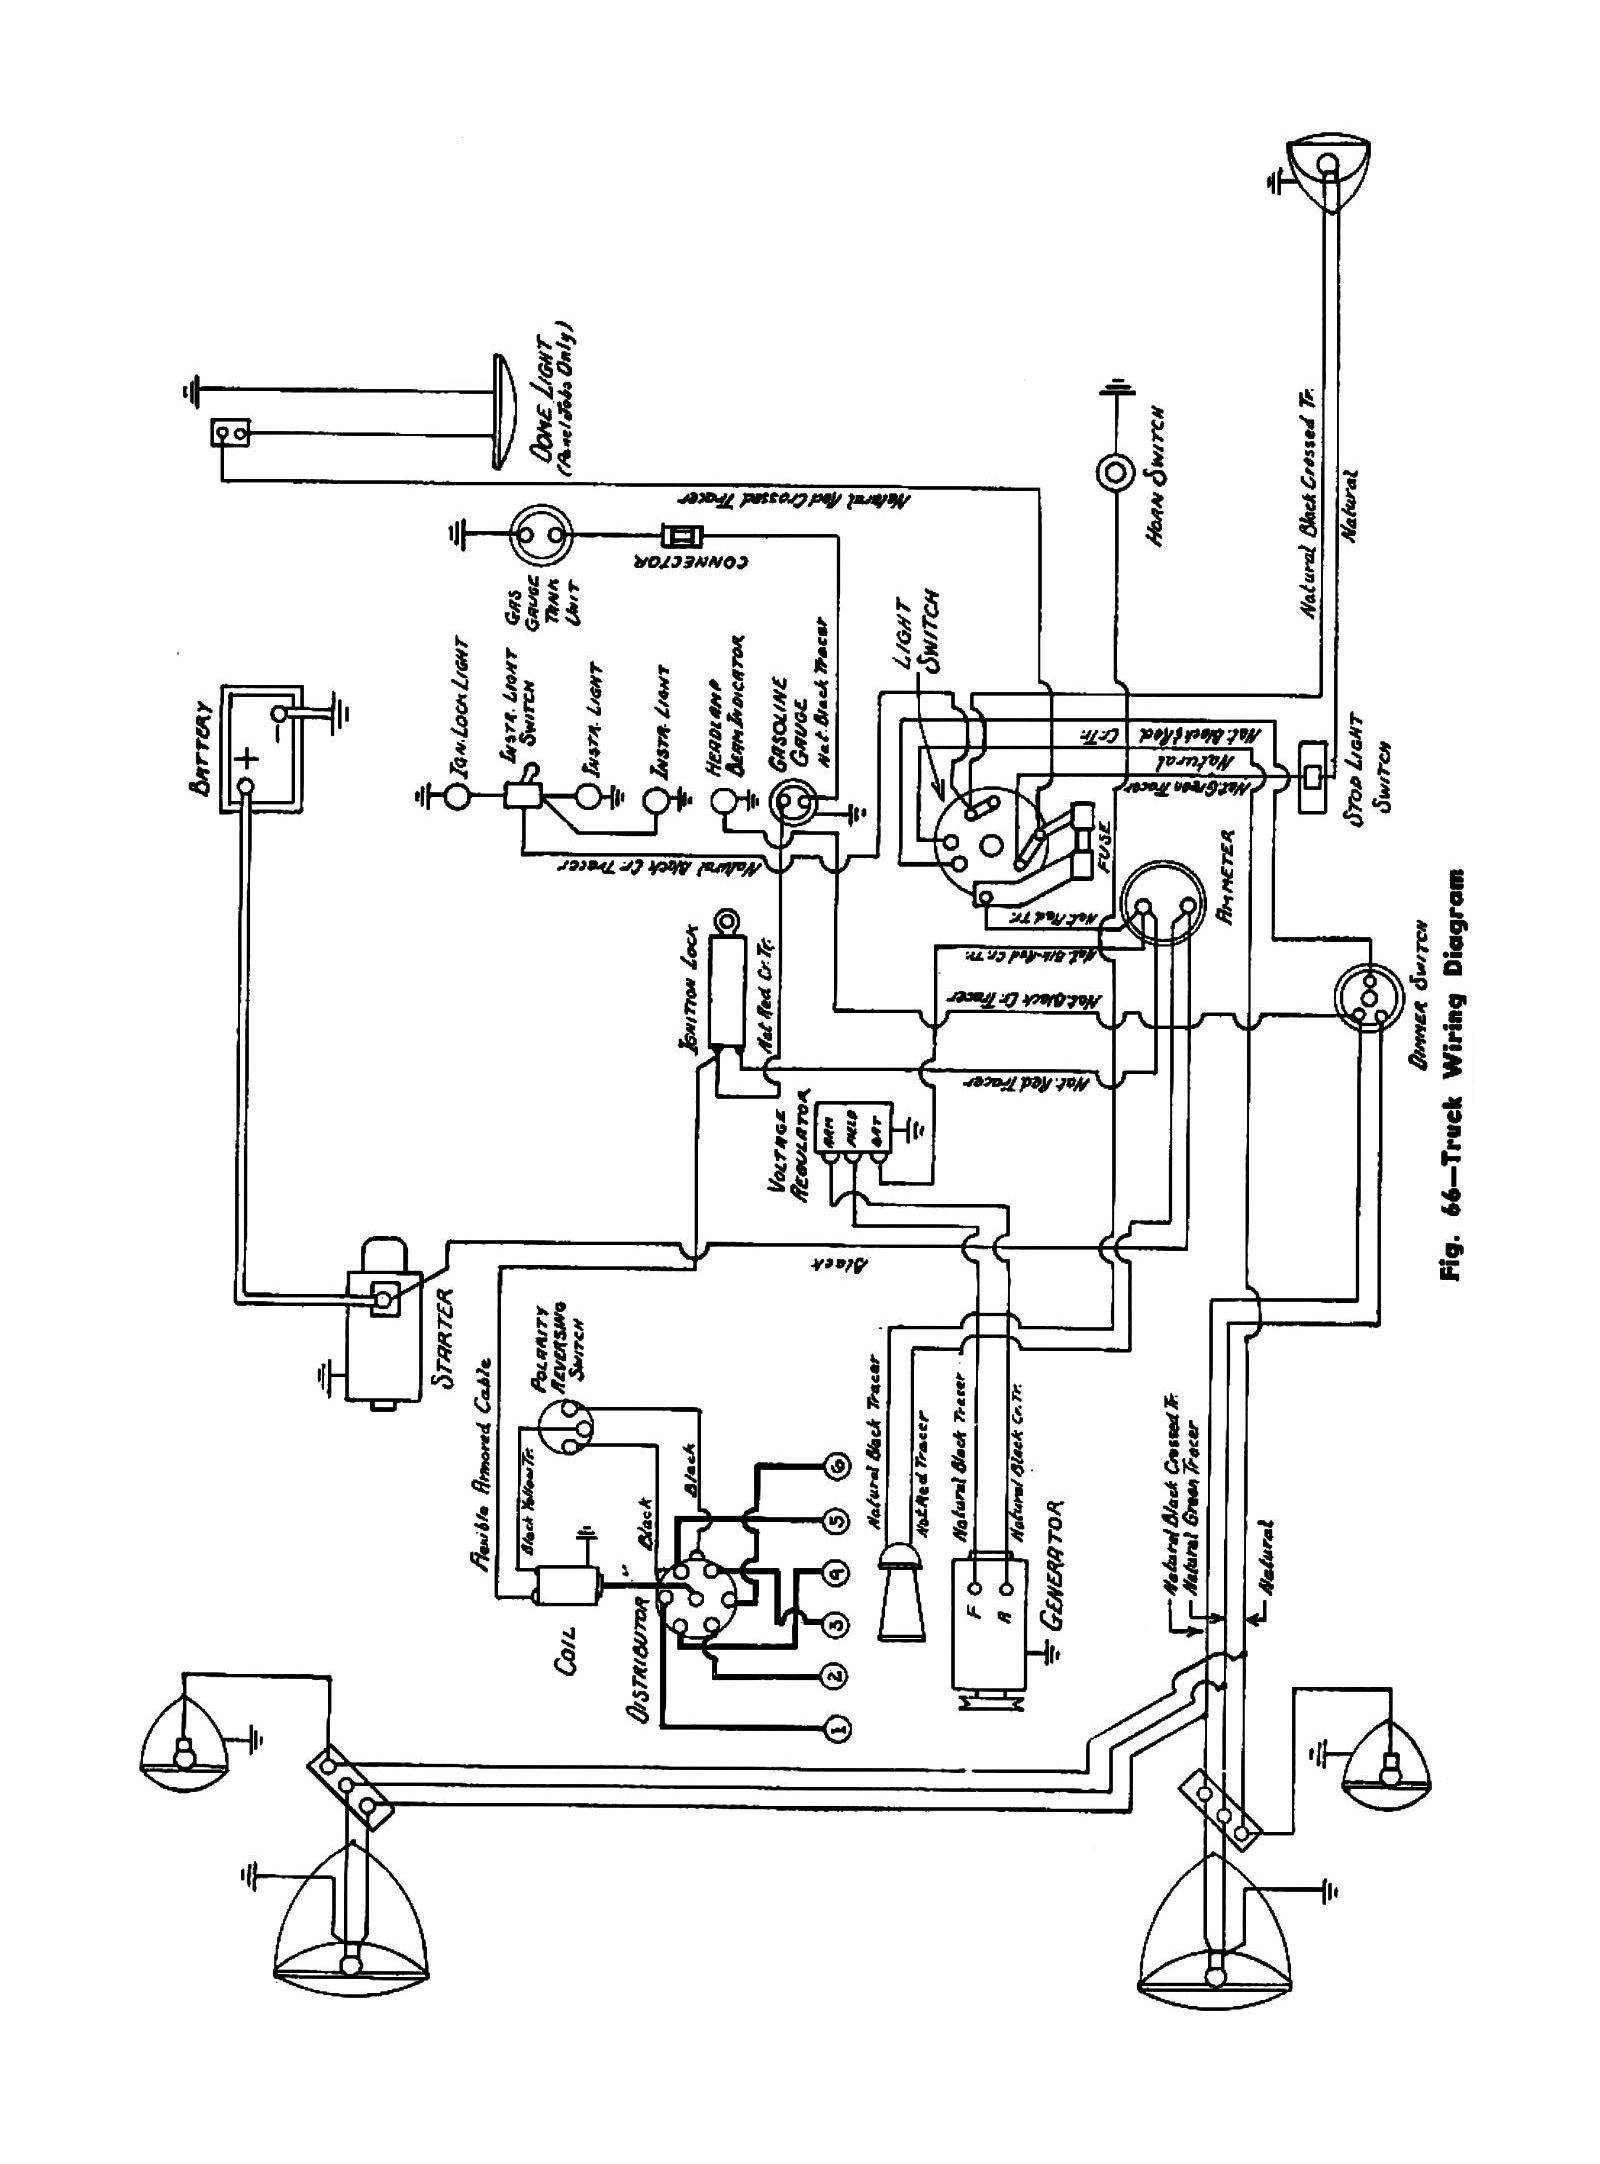 45truck ihc truck wiring diagrams mazda truck wiring diagrams \u2022 free  at honlapkeszites.co